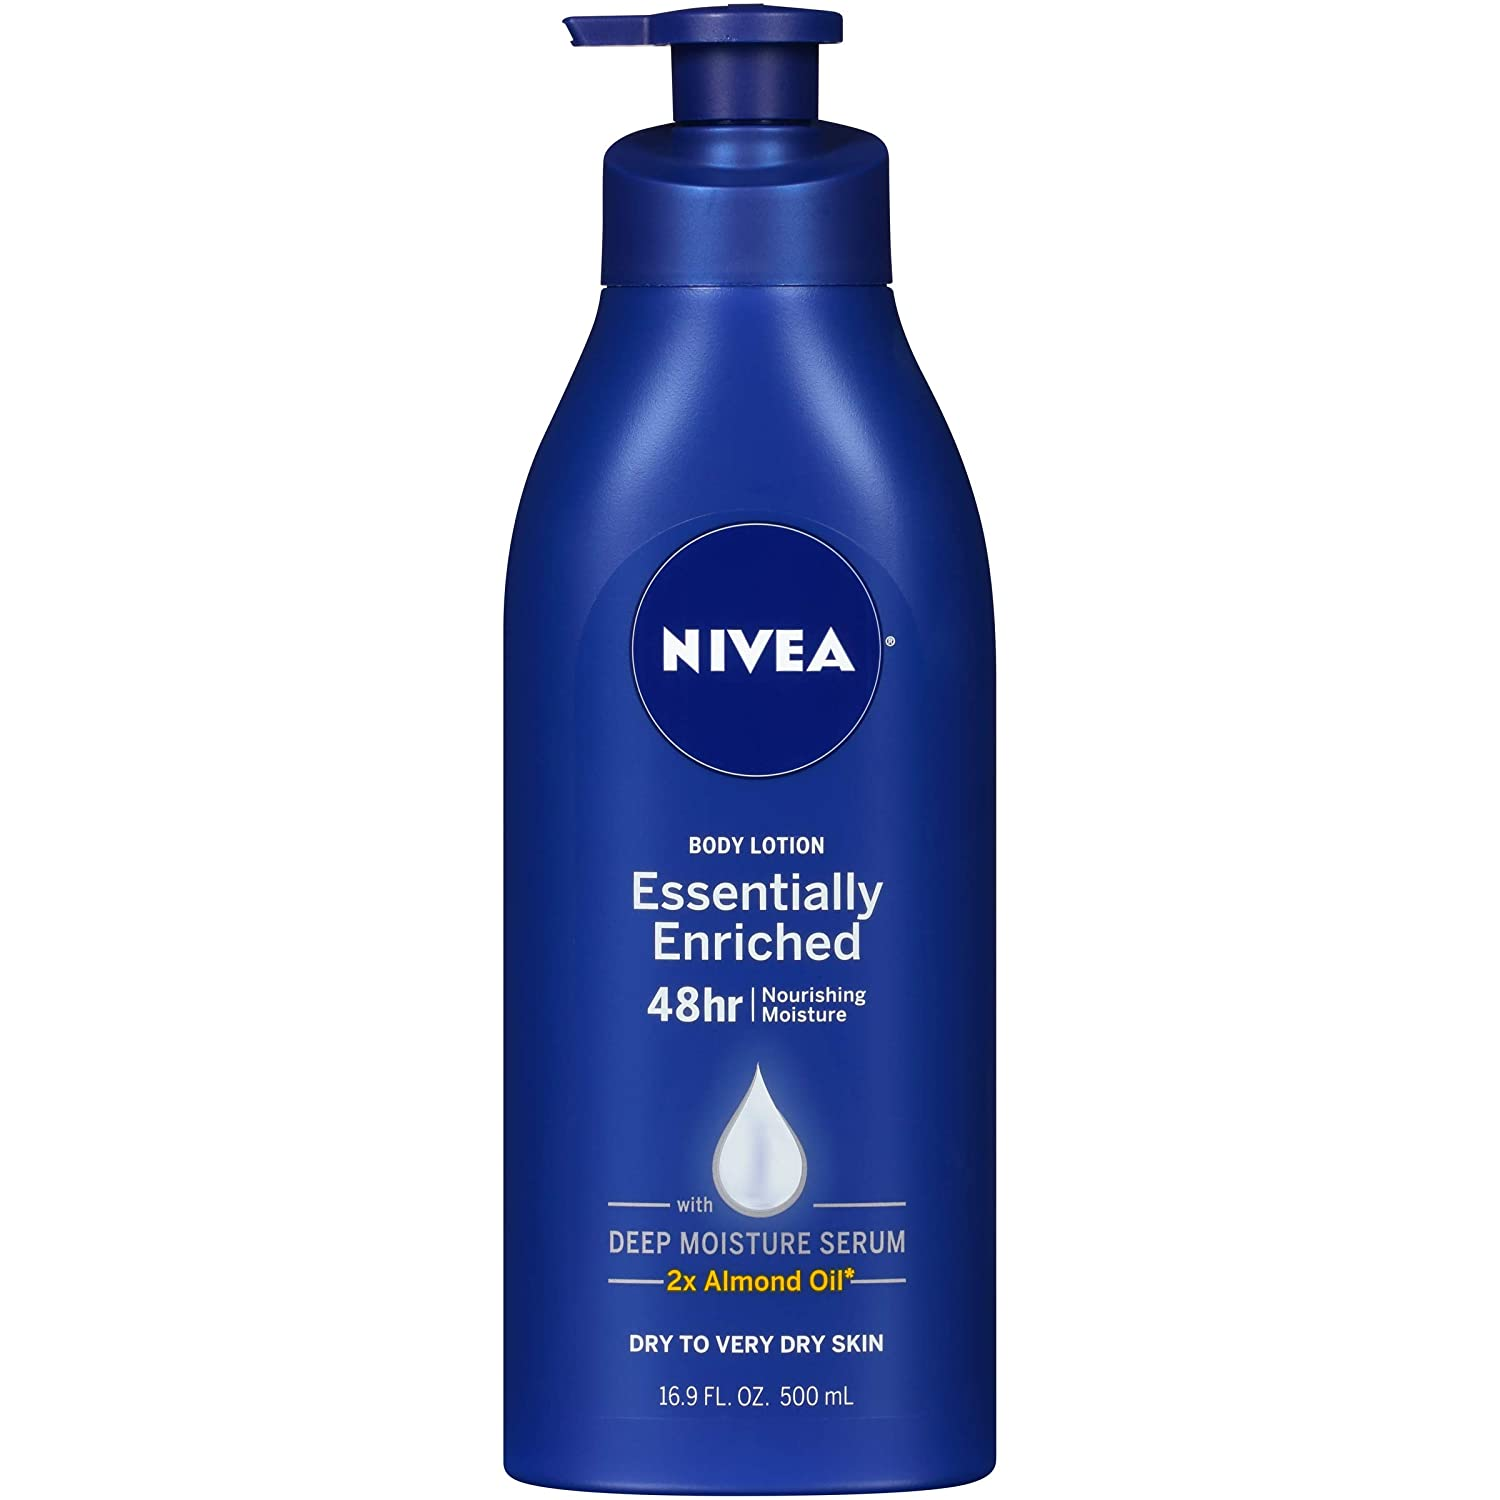 NIVEA Essentially Enriched Body Lotion 16.9 Fluid Ounce 072140011505